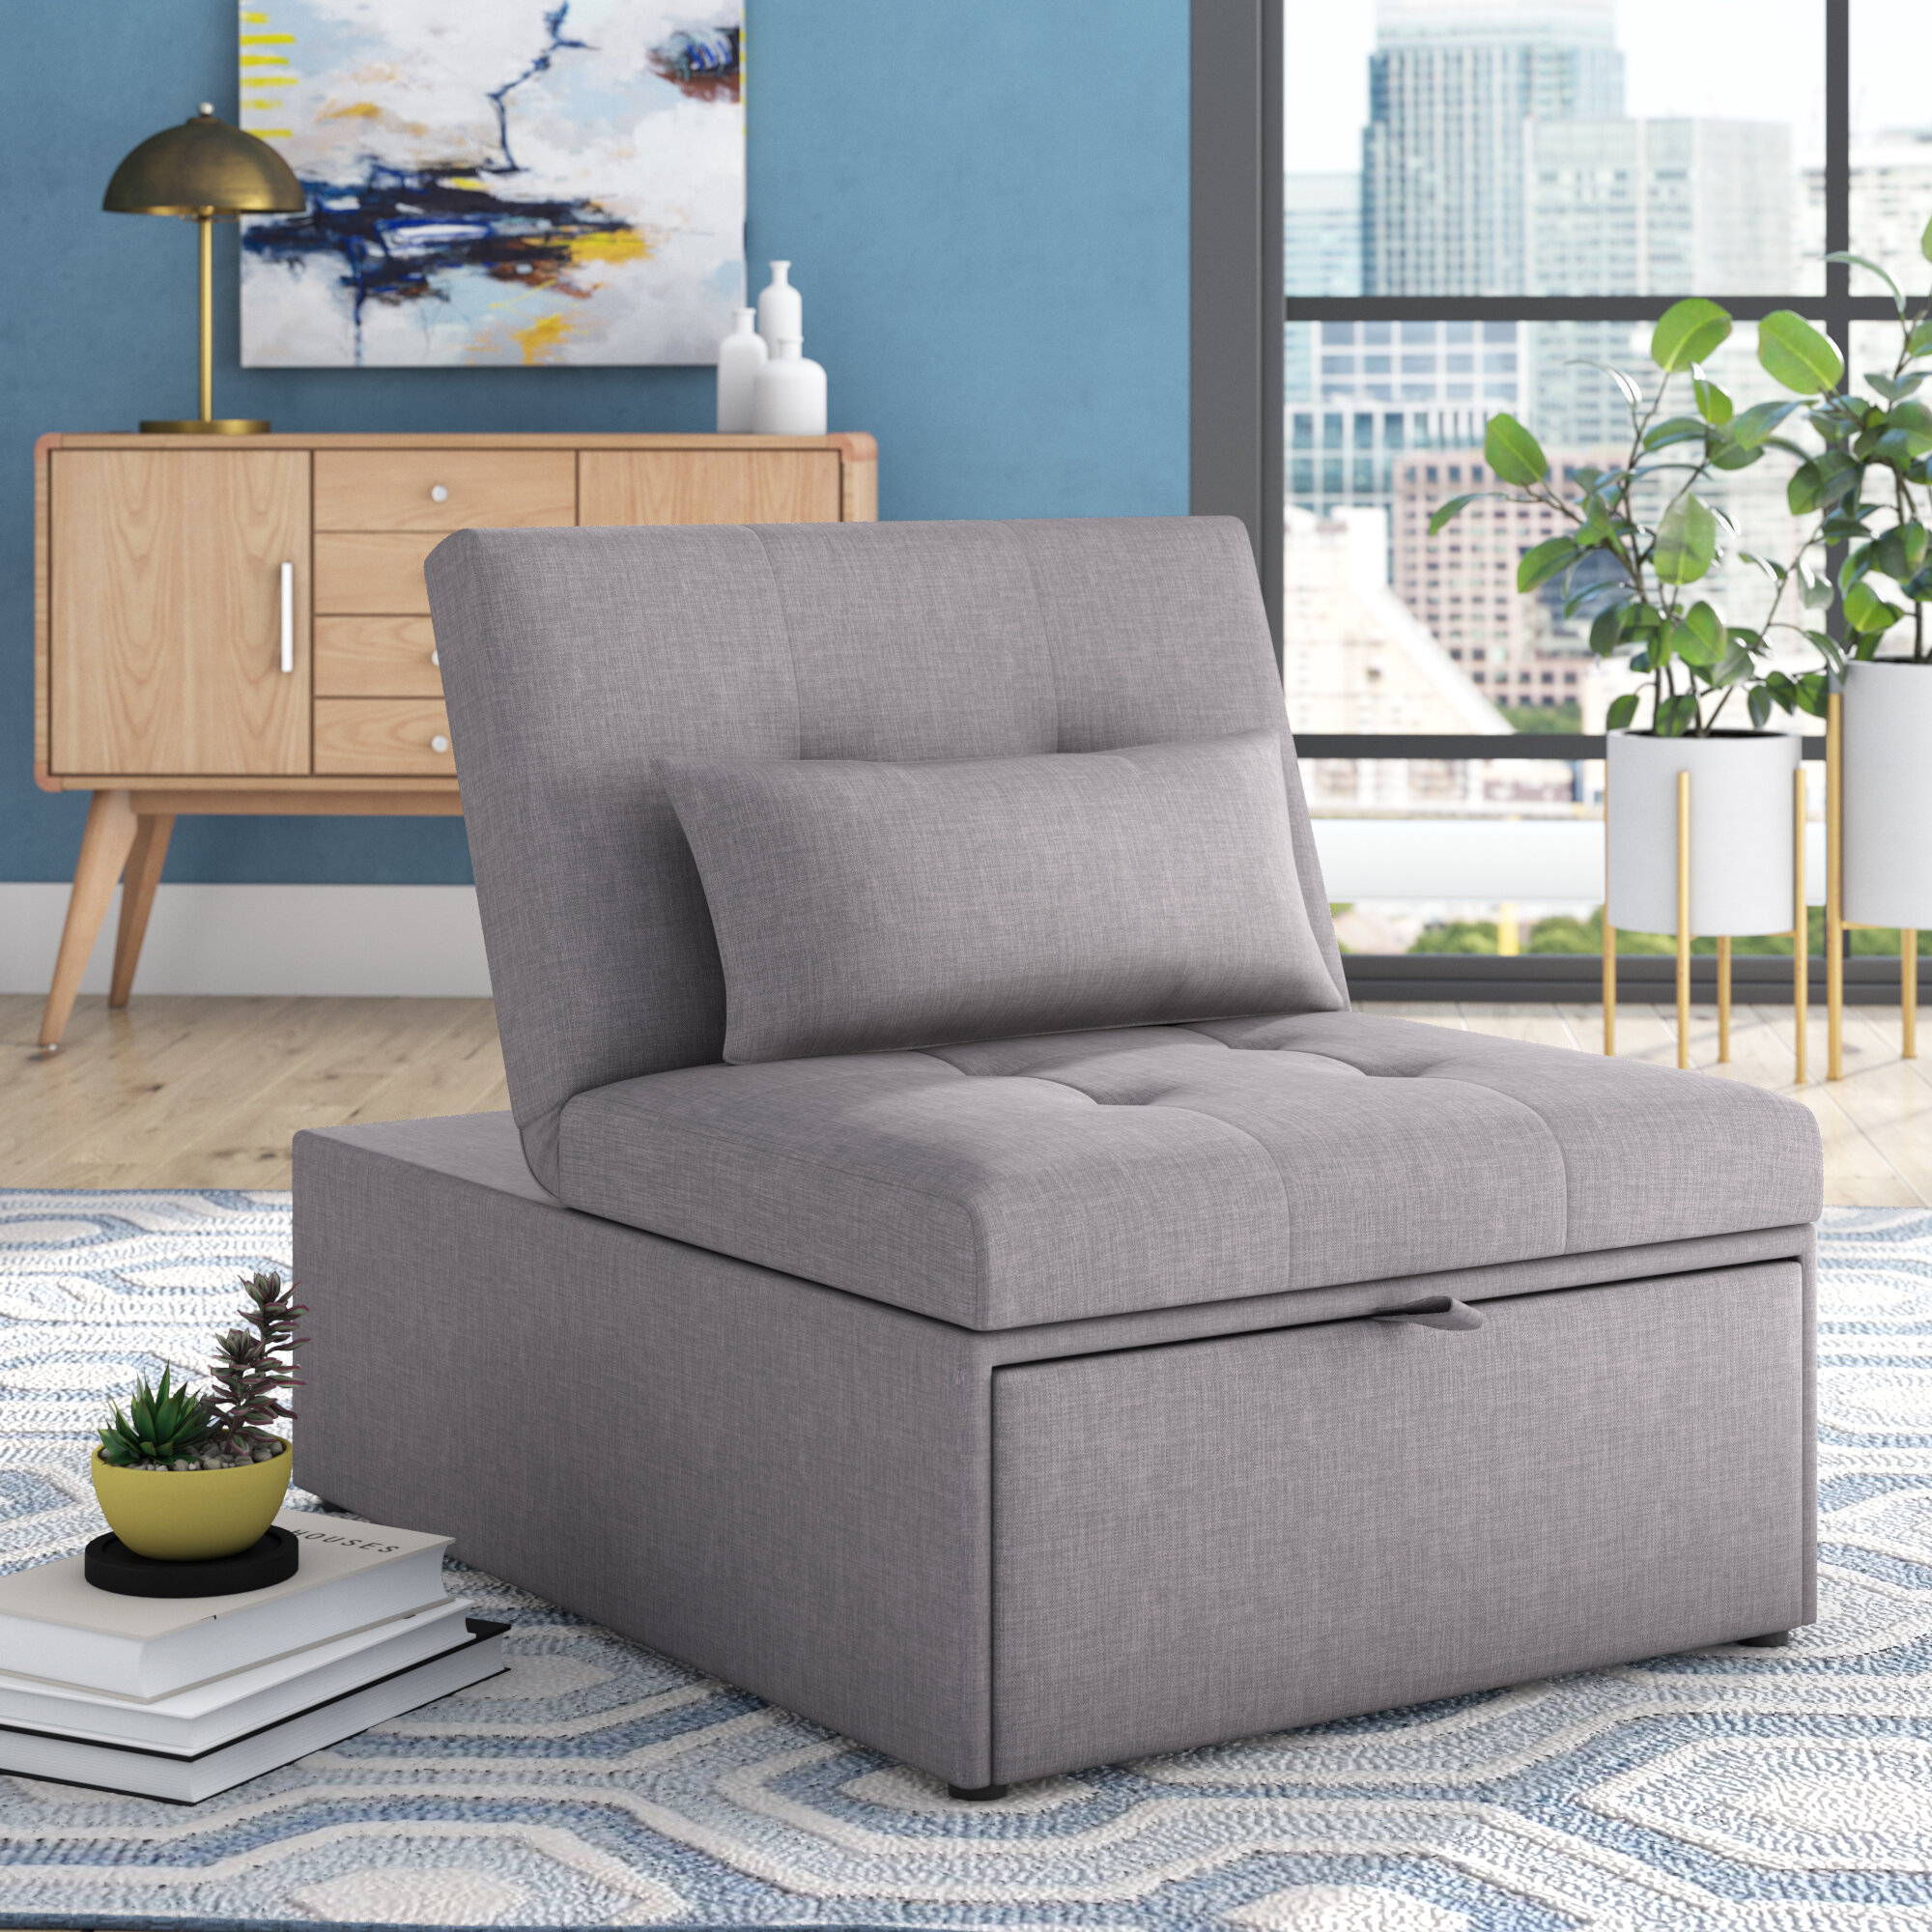 Convertible Chairs | Wayfair With Regard To New London Convertible Chairs (View 5 of 15)